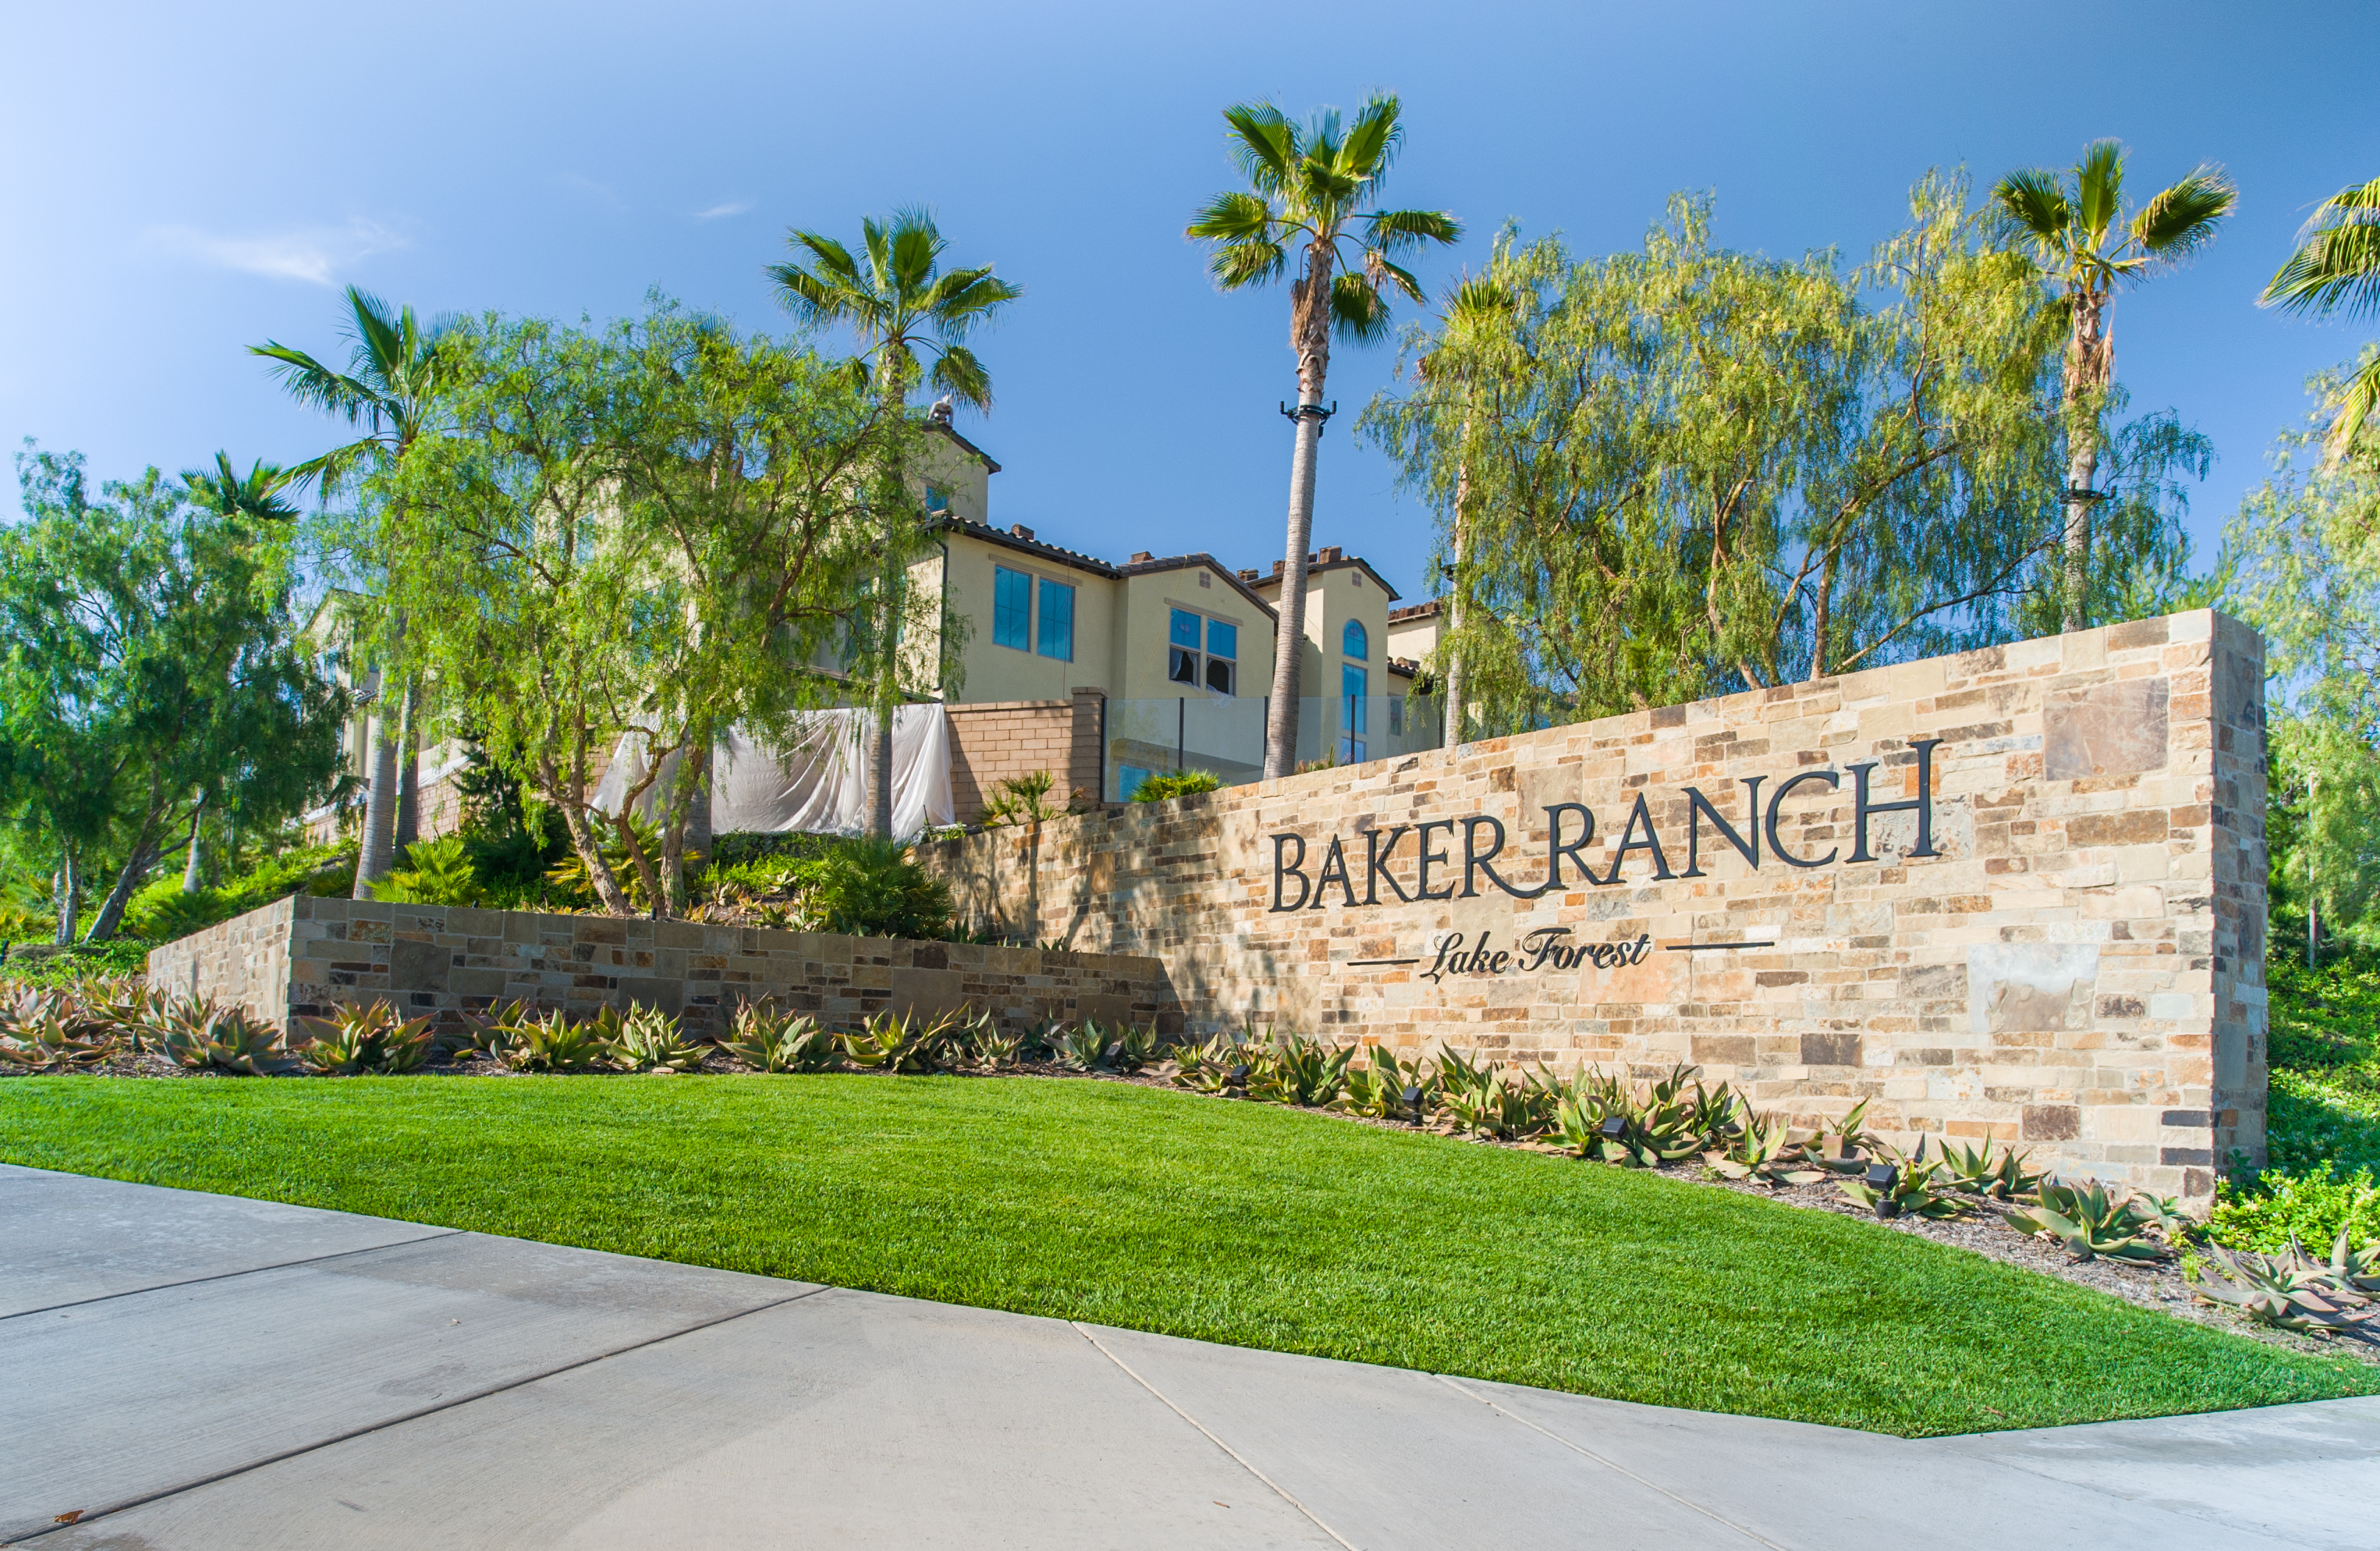 Baker Ranch 22